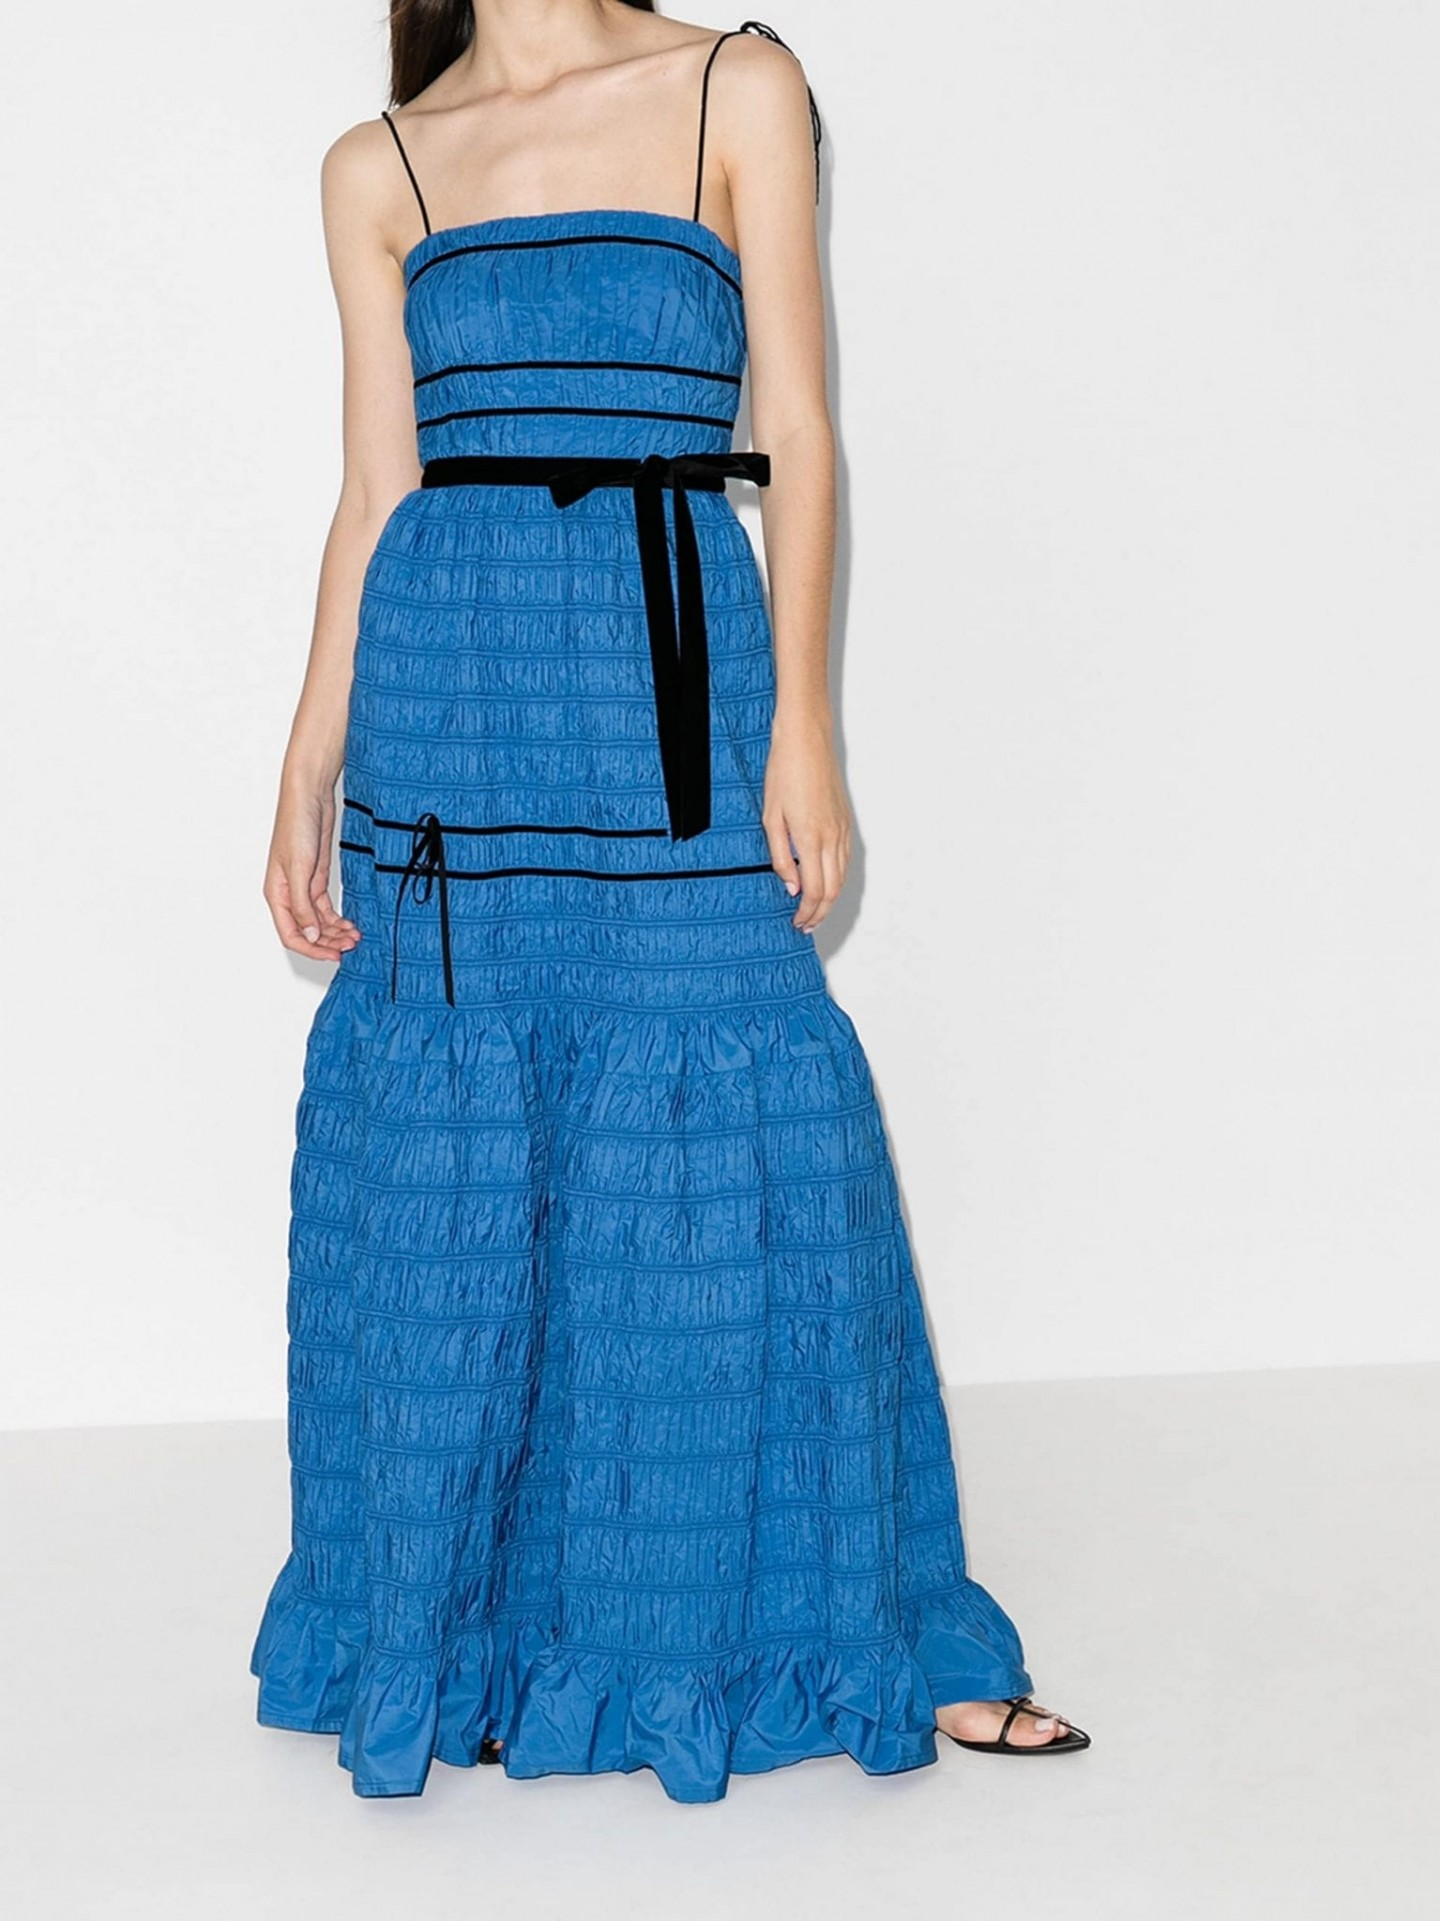 MOLLY GODDARD Shirred Tiered Gown